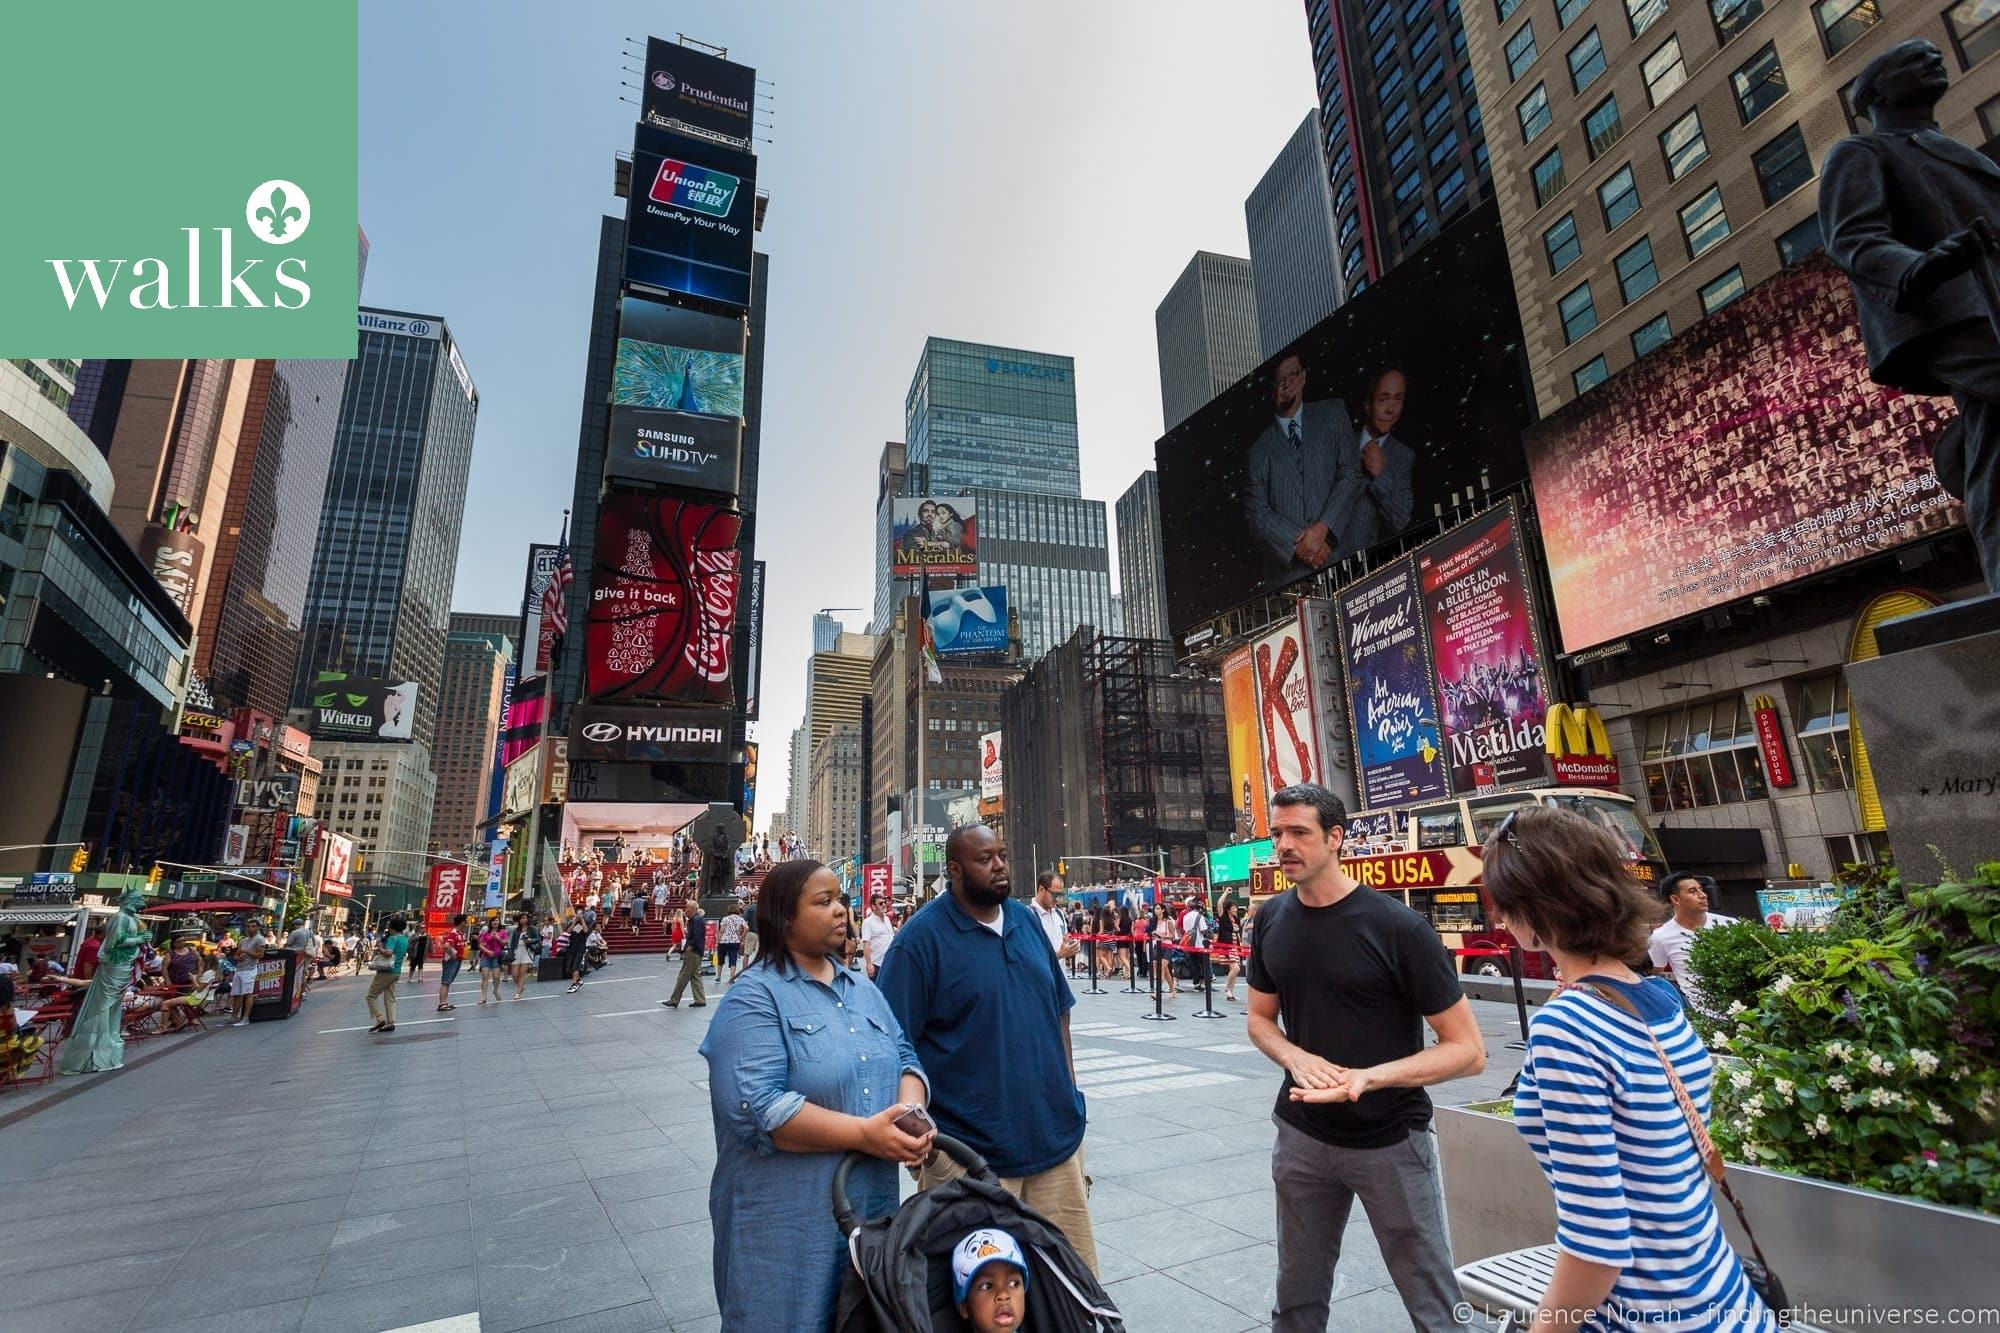 Times Square meeting point walks of new york